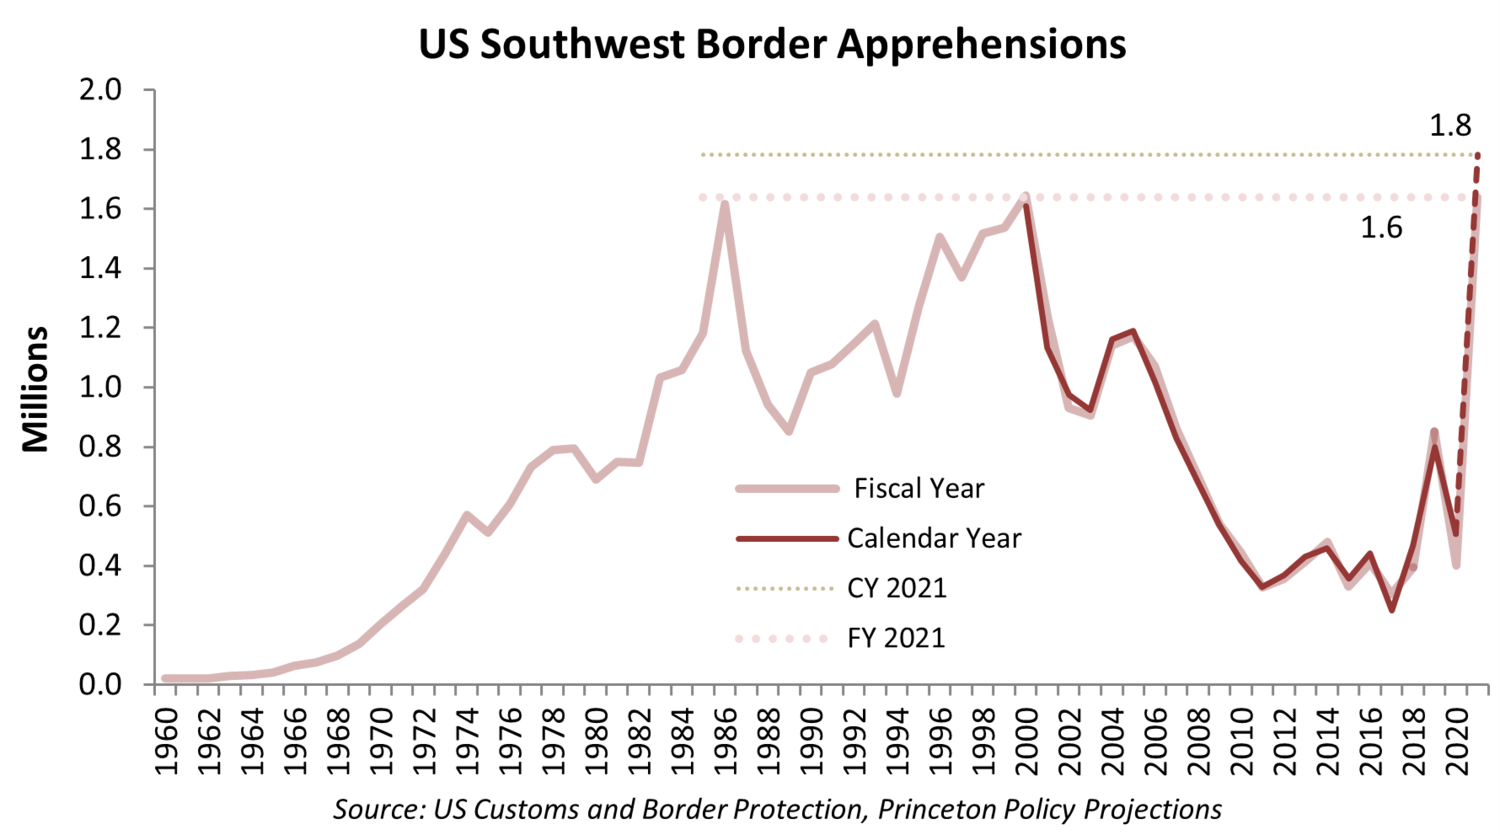 Never' before: 1.85 million illegal border crossings projected, 10,000 in one  camp   Washington Examiner